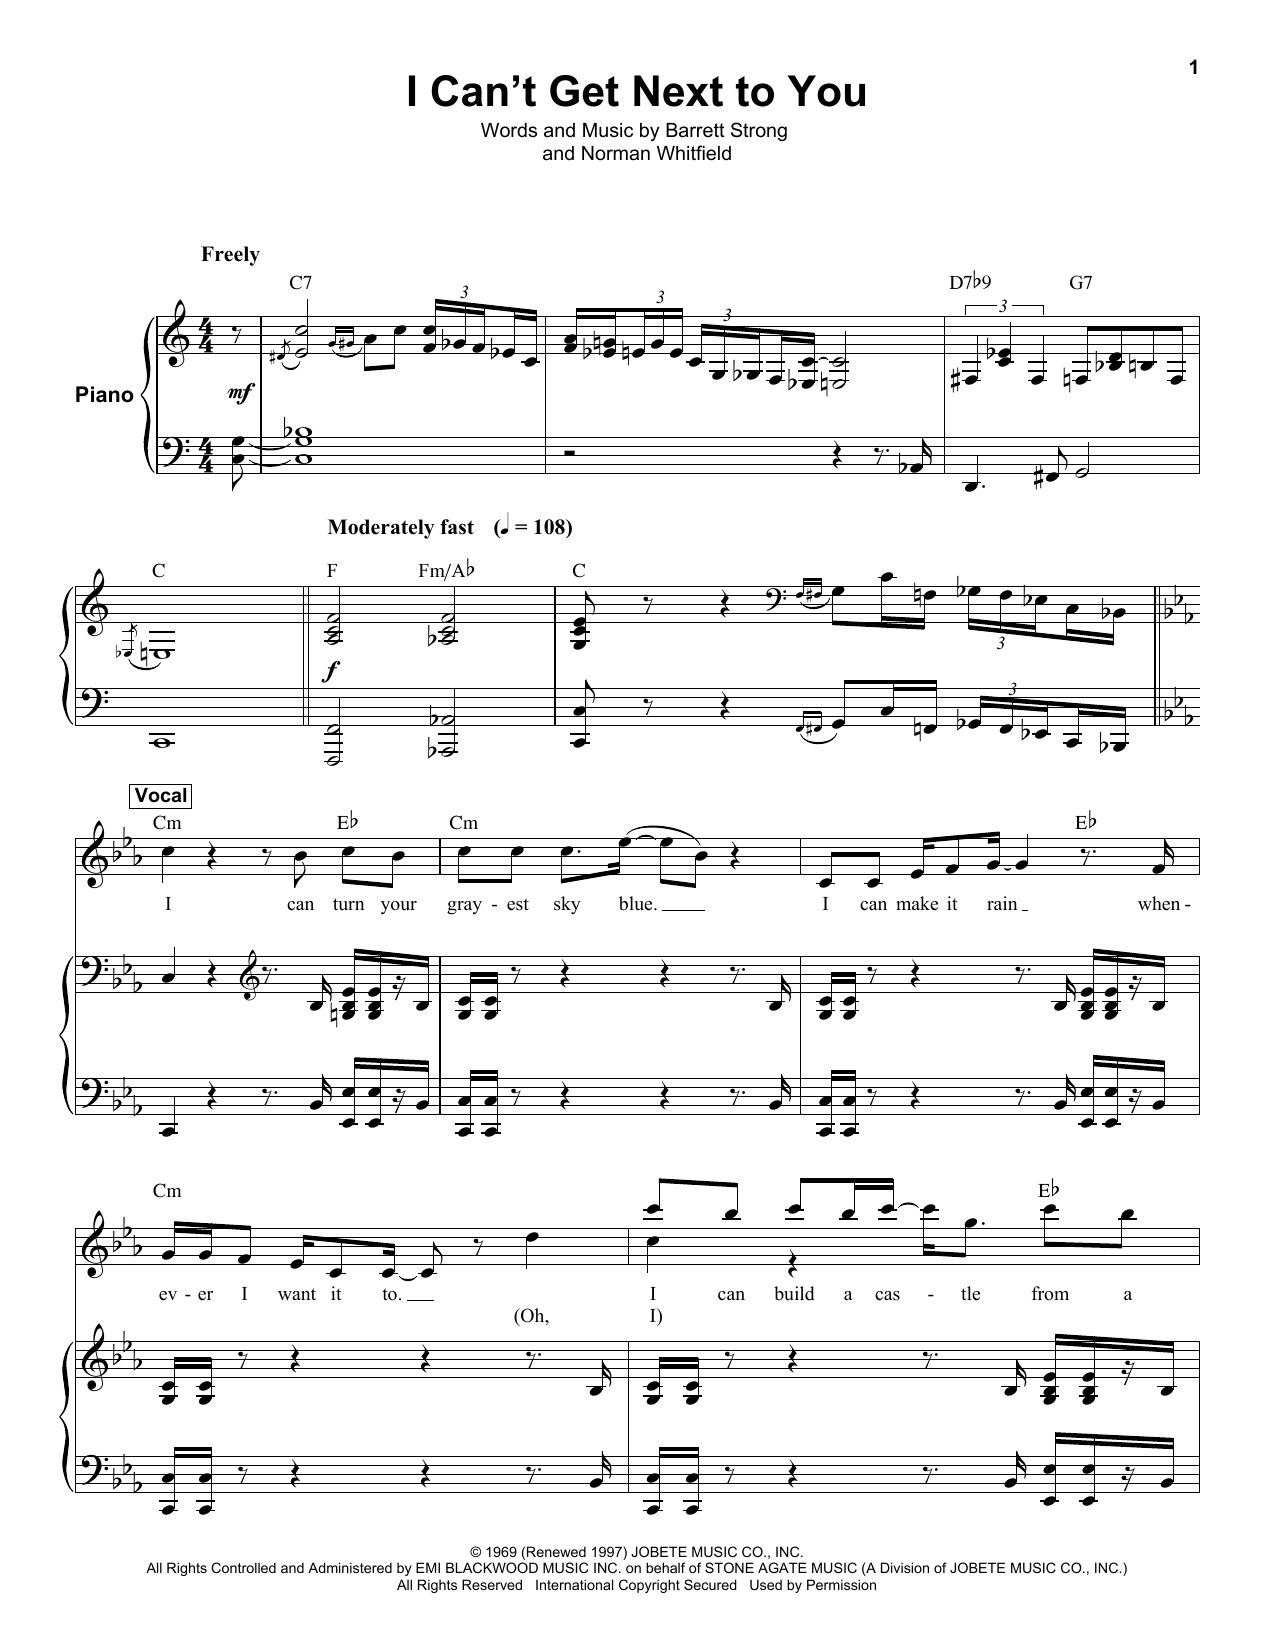 I Can't Get Next To You (Keyboard Transcription)